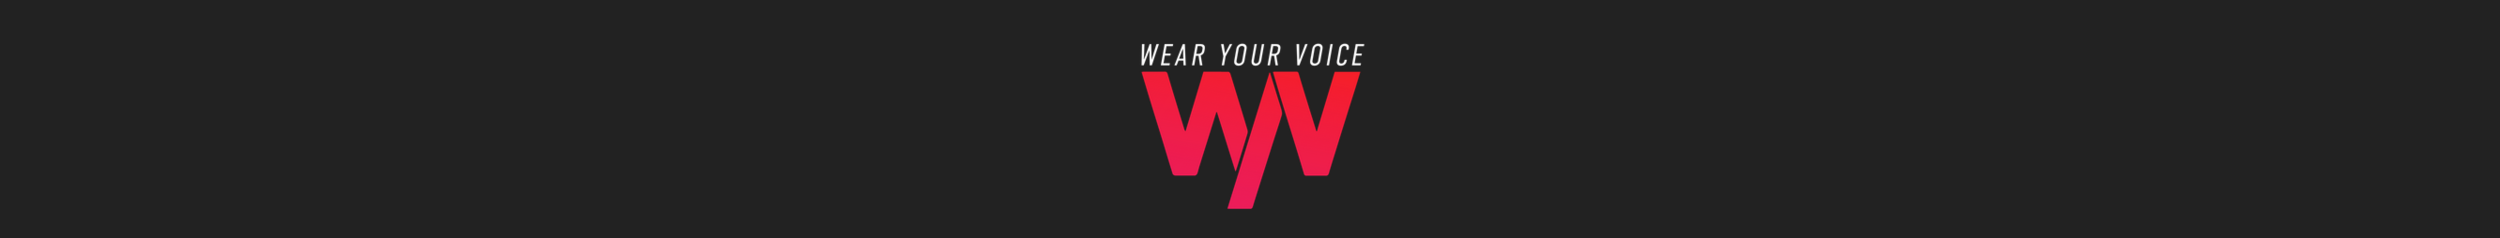 Wear Your Voice.png